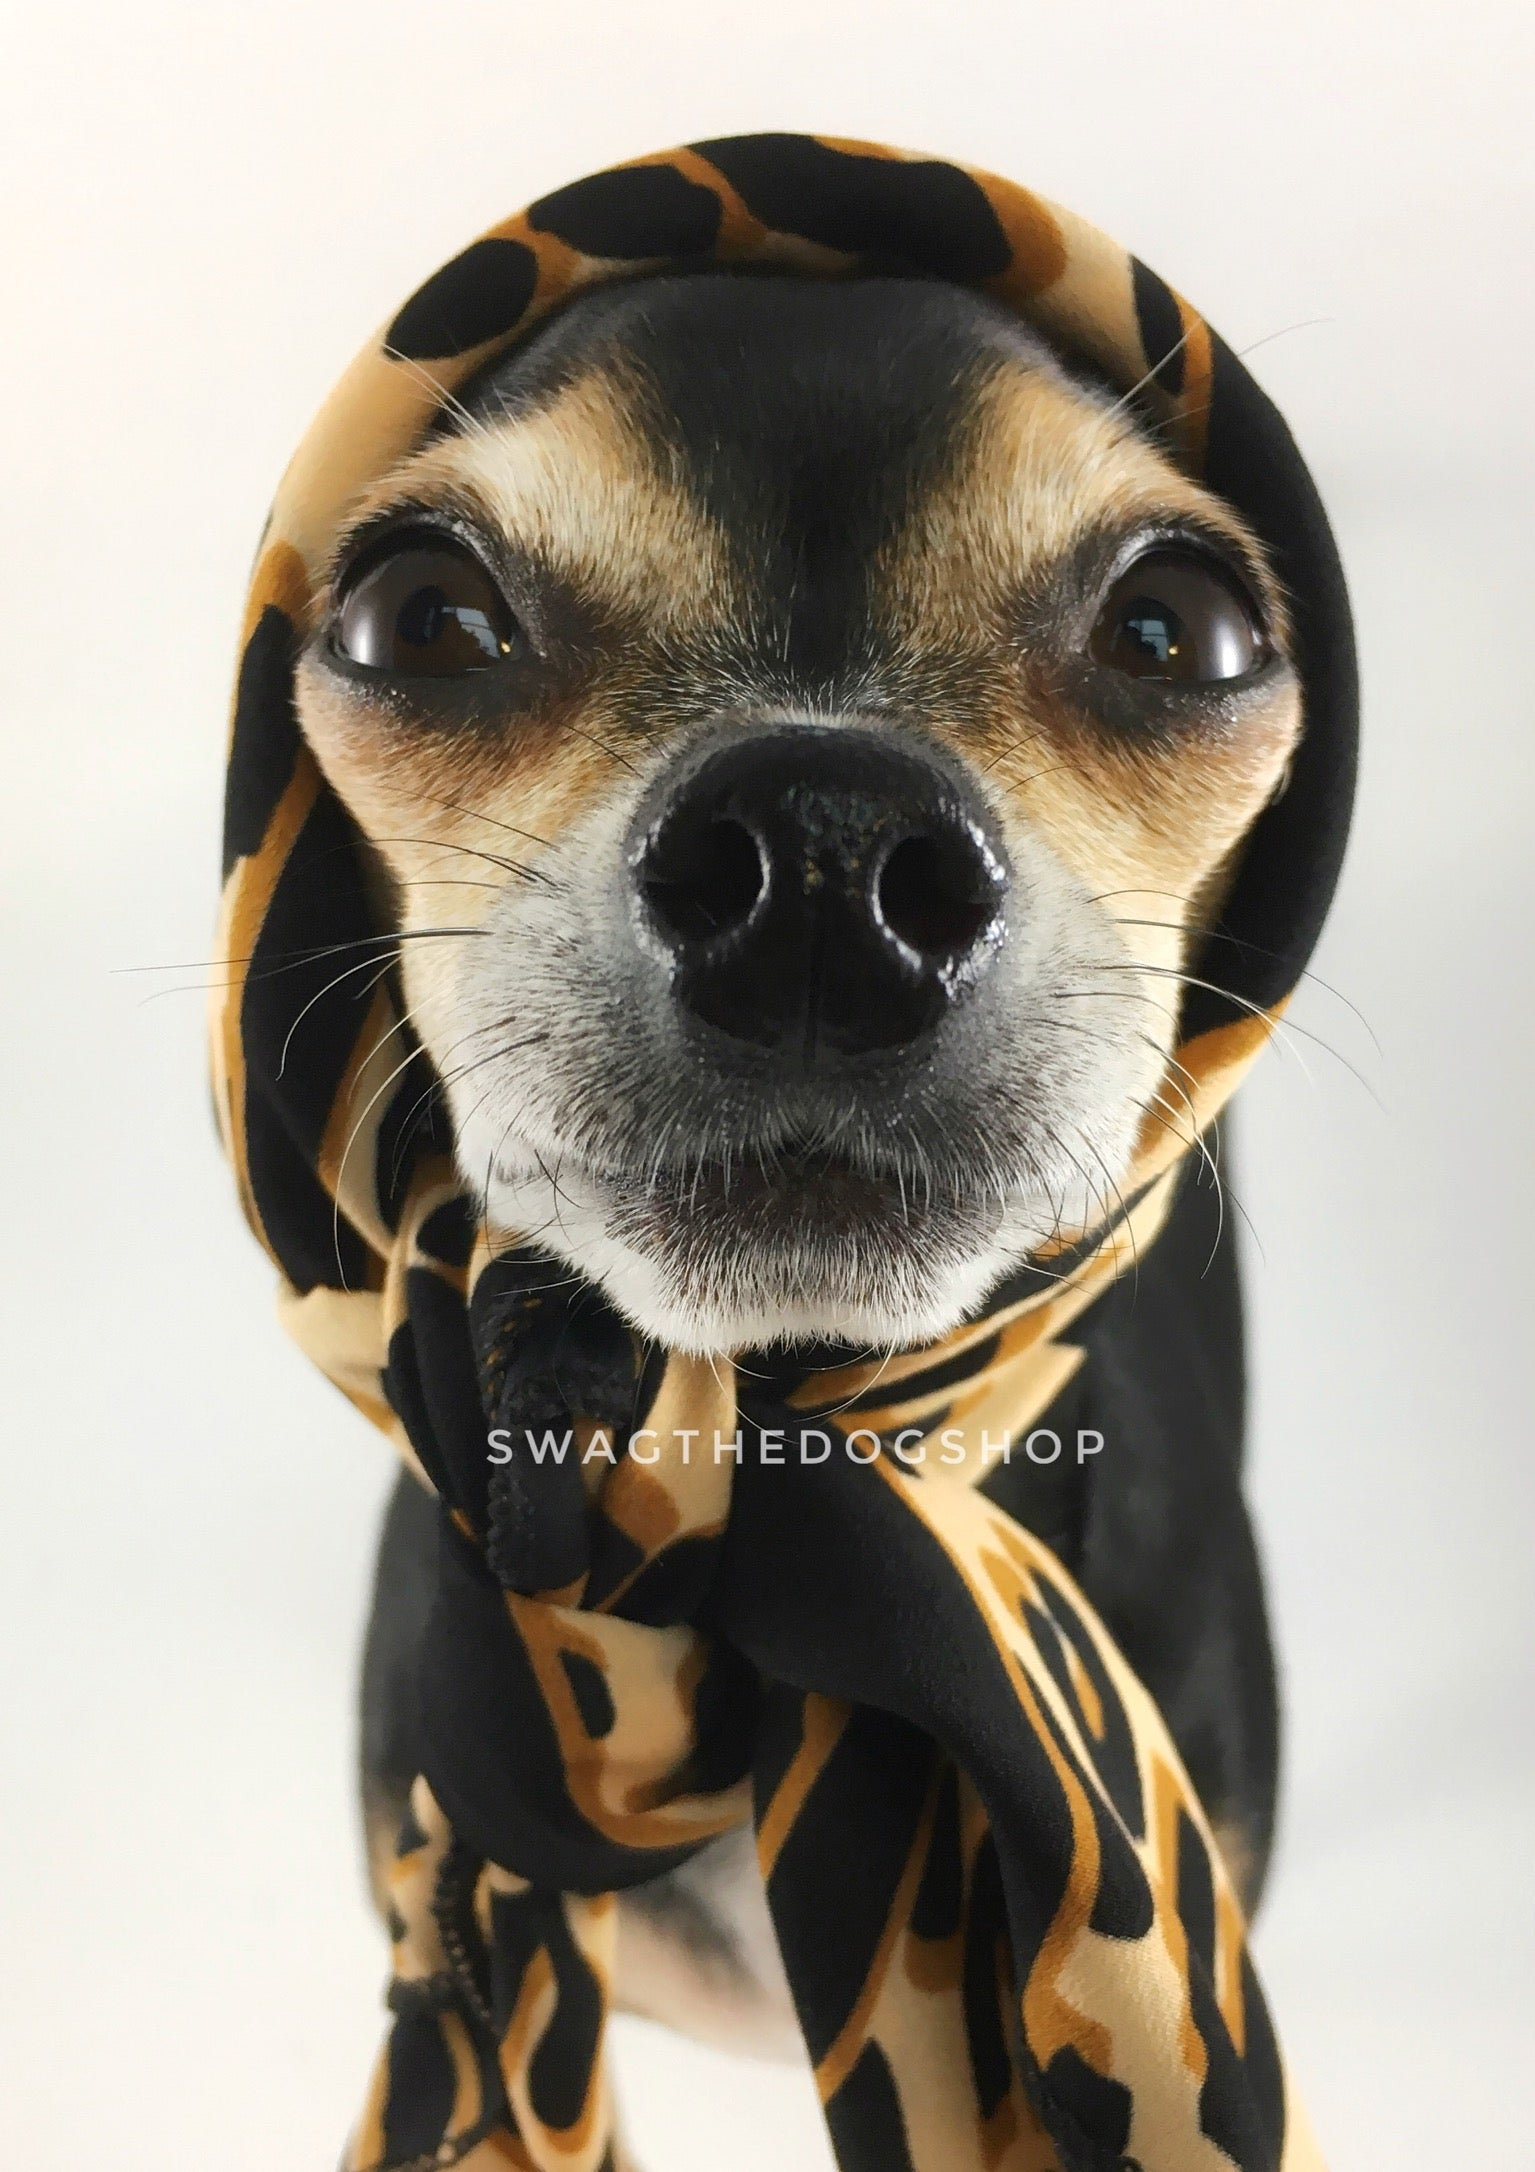 Leopard Ivory Cream Swagdana Scarf - Bust of Cute Chihuahua Wearing Swagdana Scarf as Headscarf. Dog Bandana. Dog Scarf.